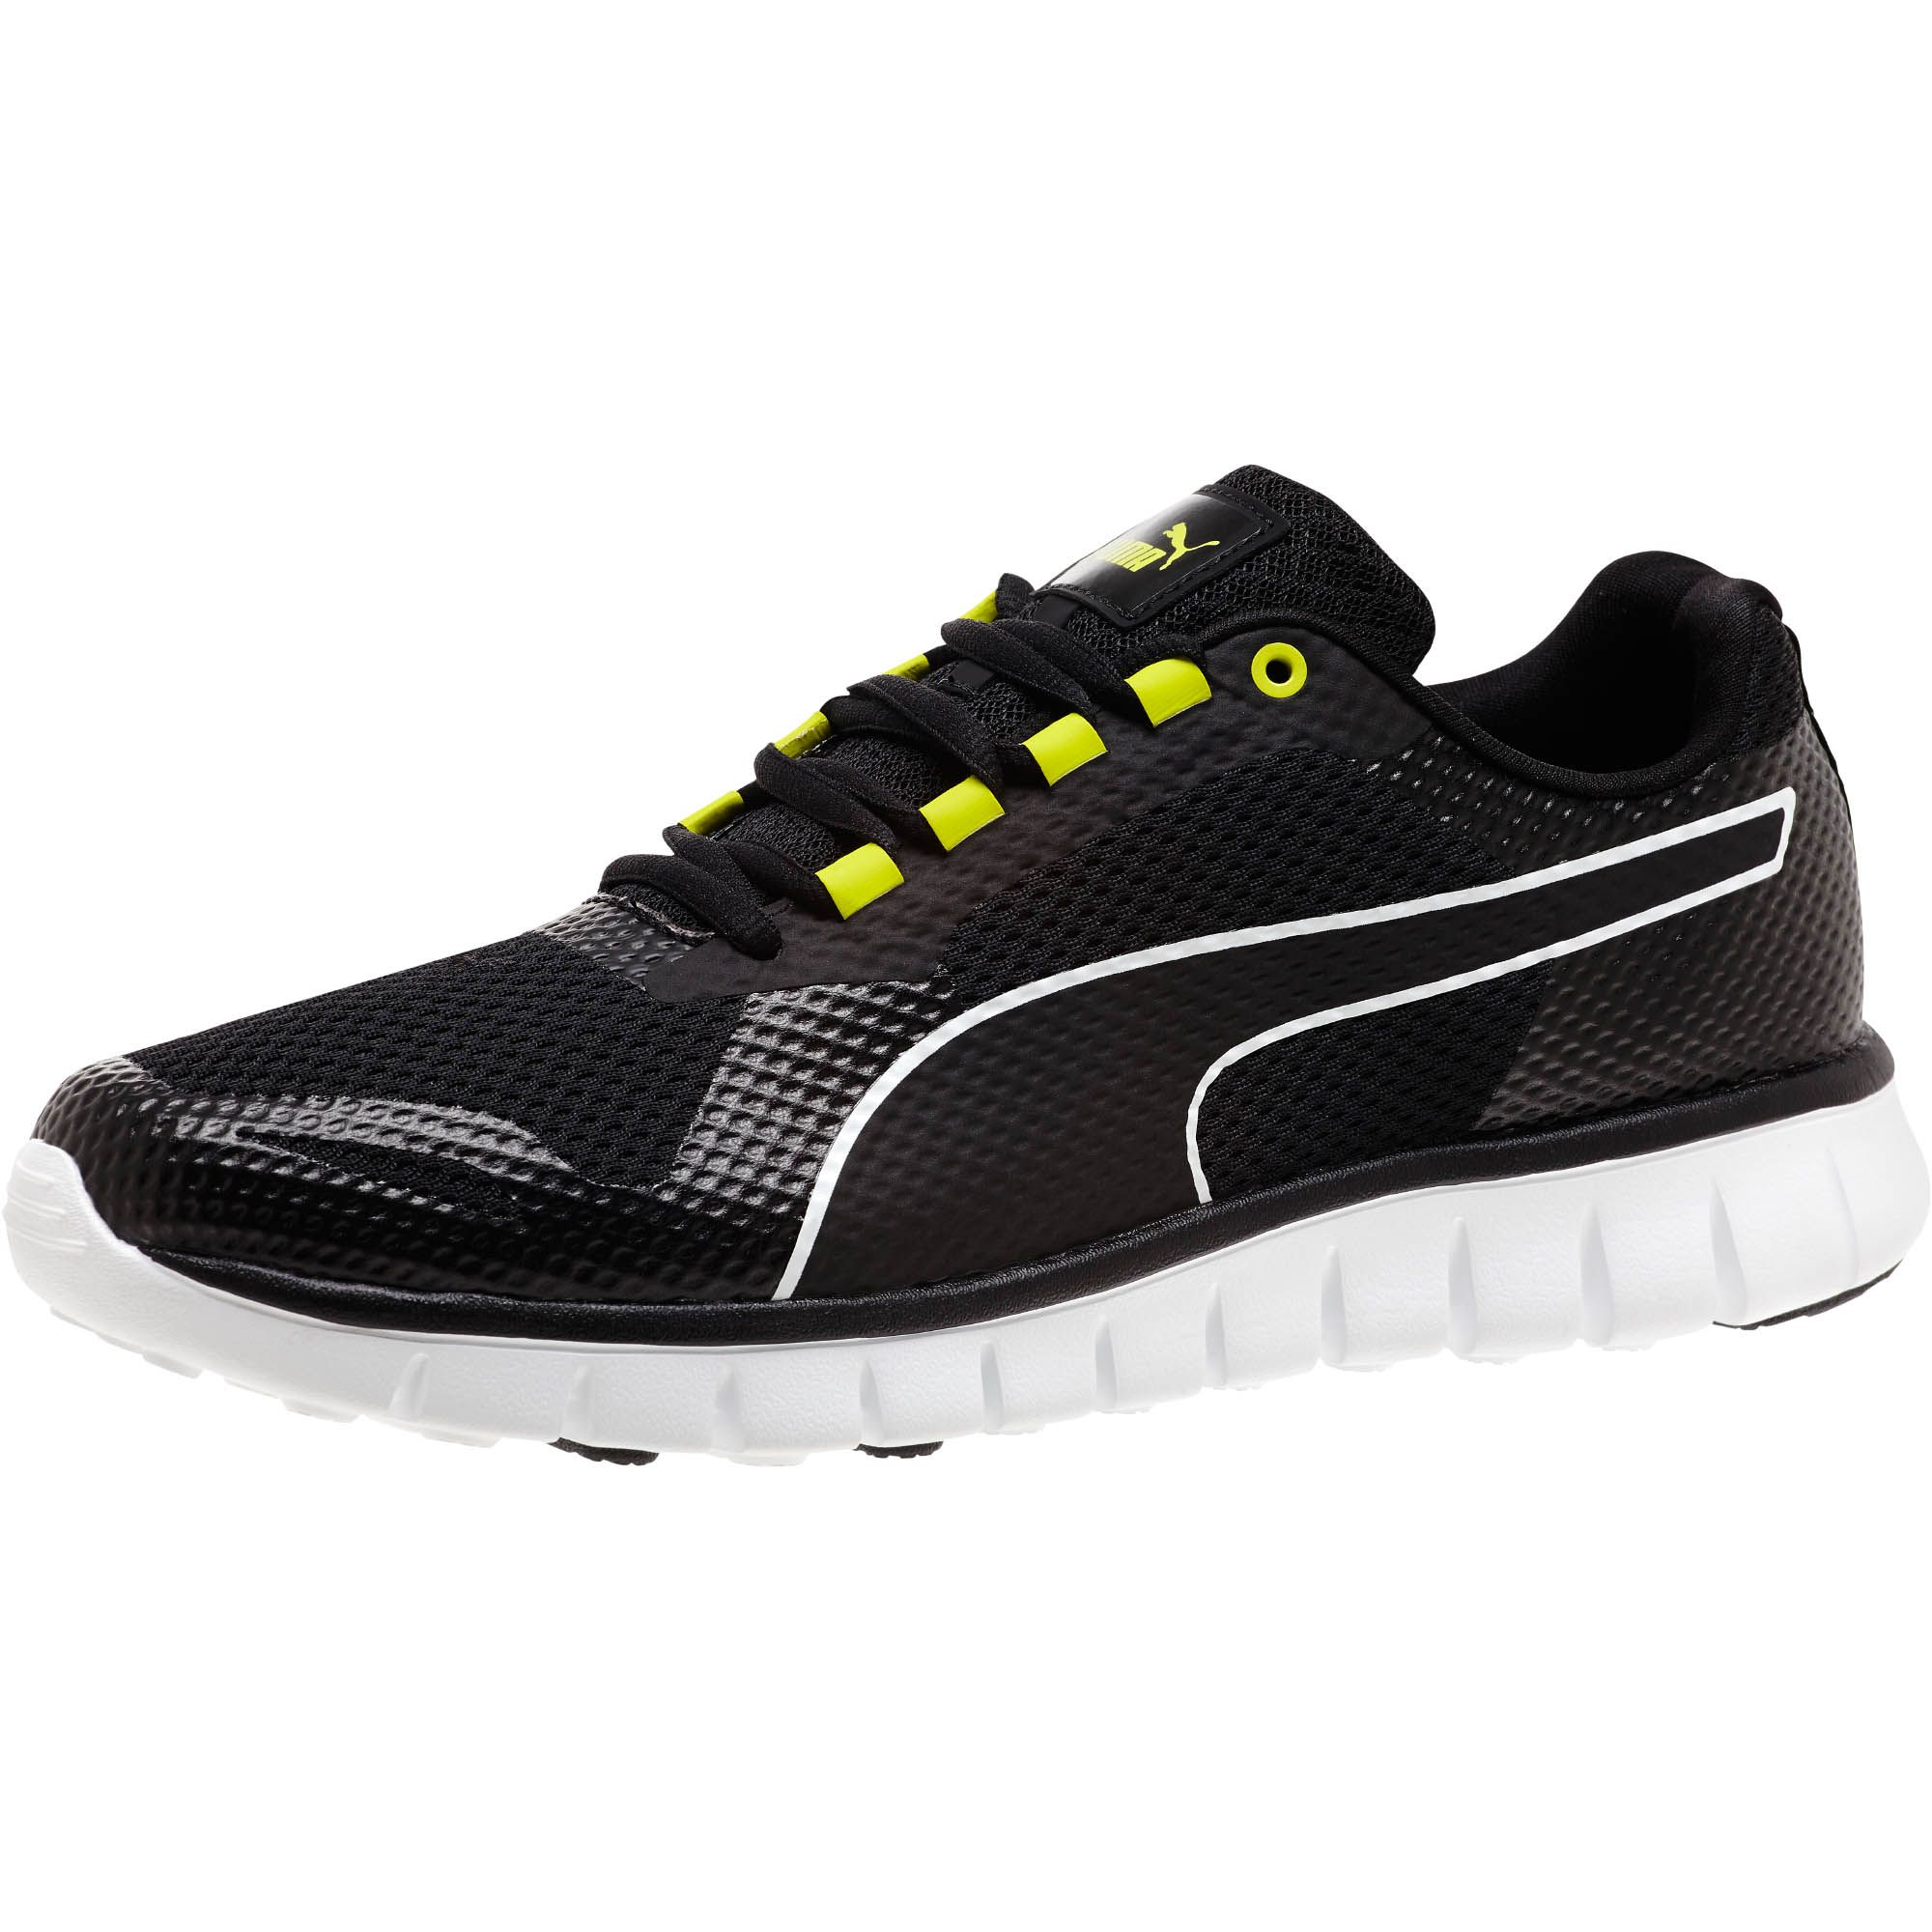 PUMA-Blur-Running-Shoes-Running-Low-Boot-Male-